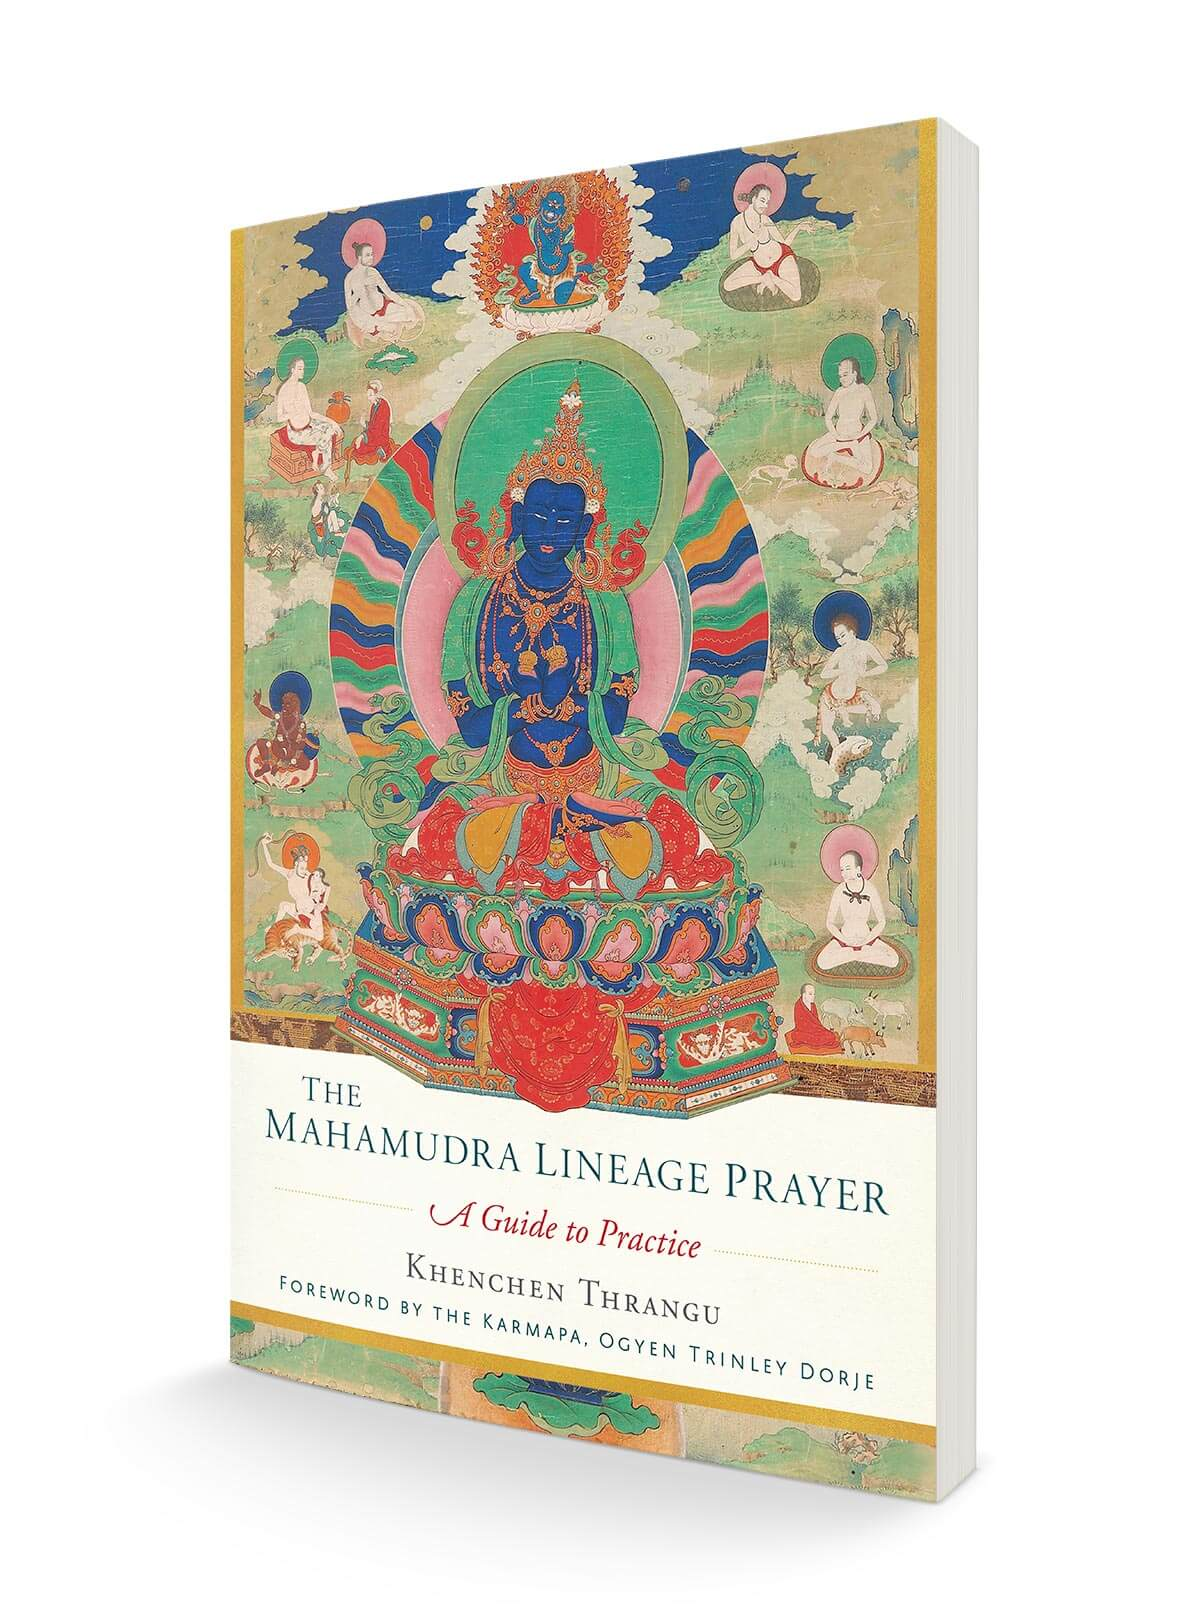 Shambhala publications books audio and online courses for fresh off the press fandeluxe Image collections